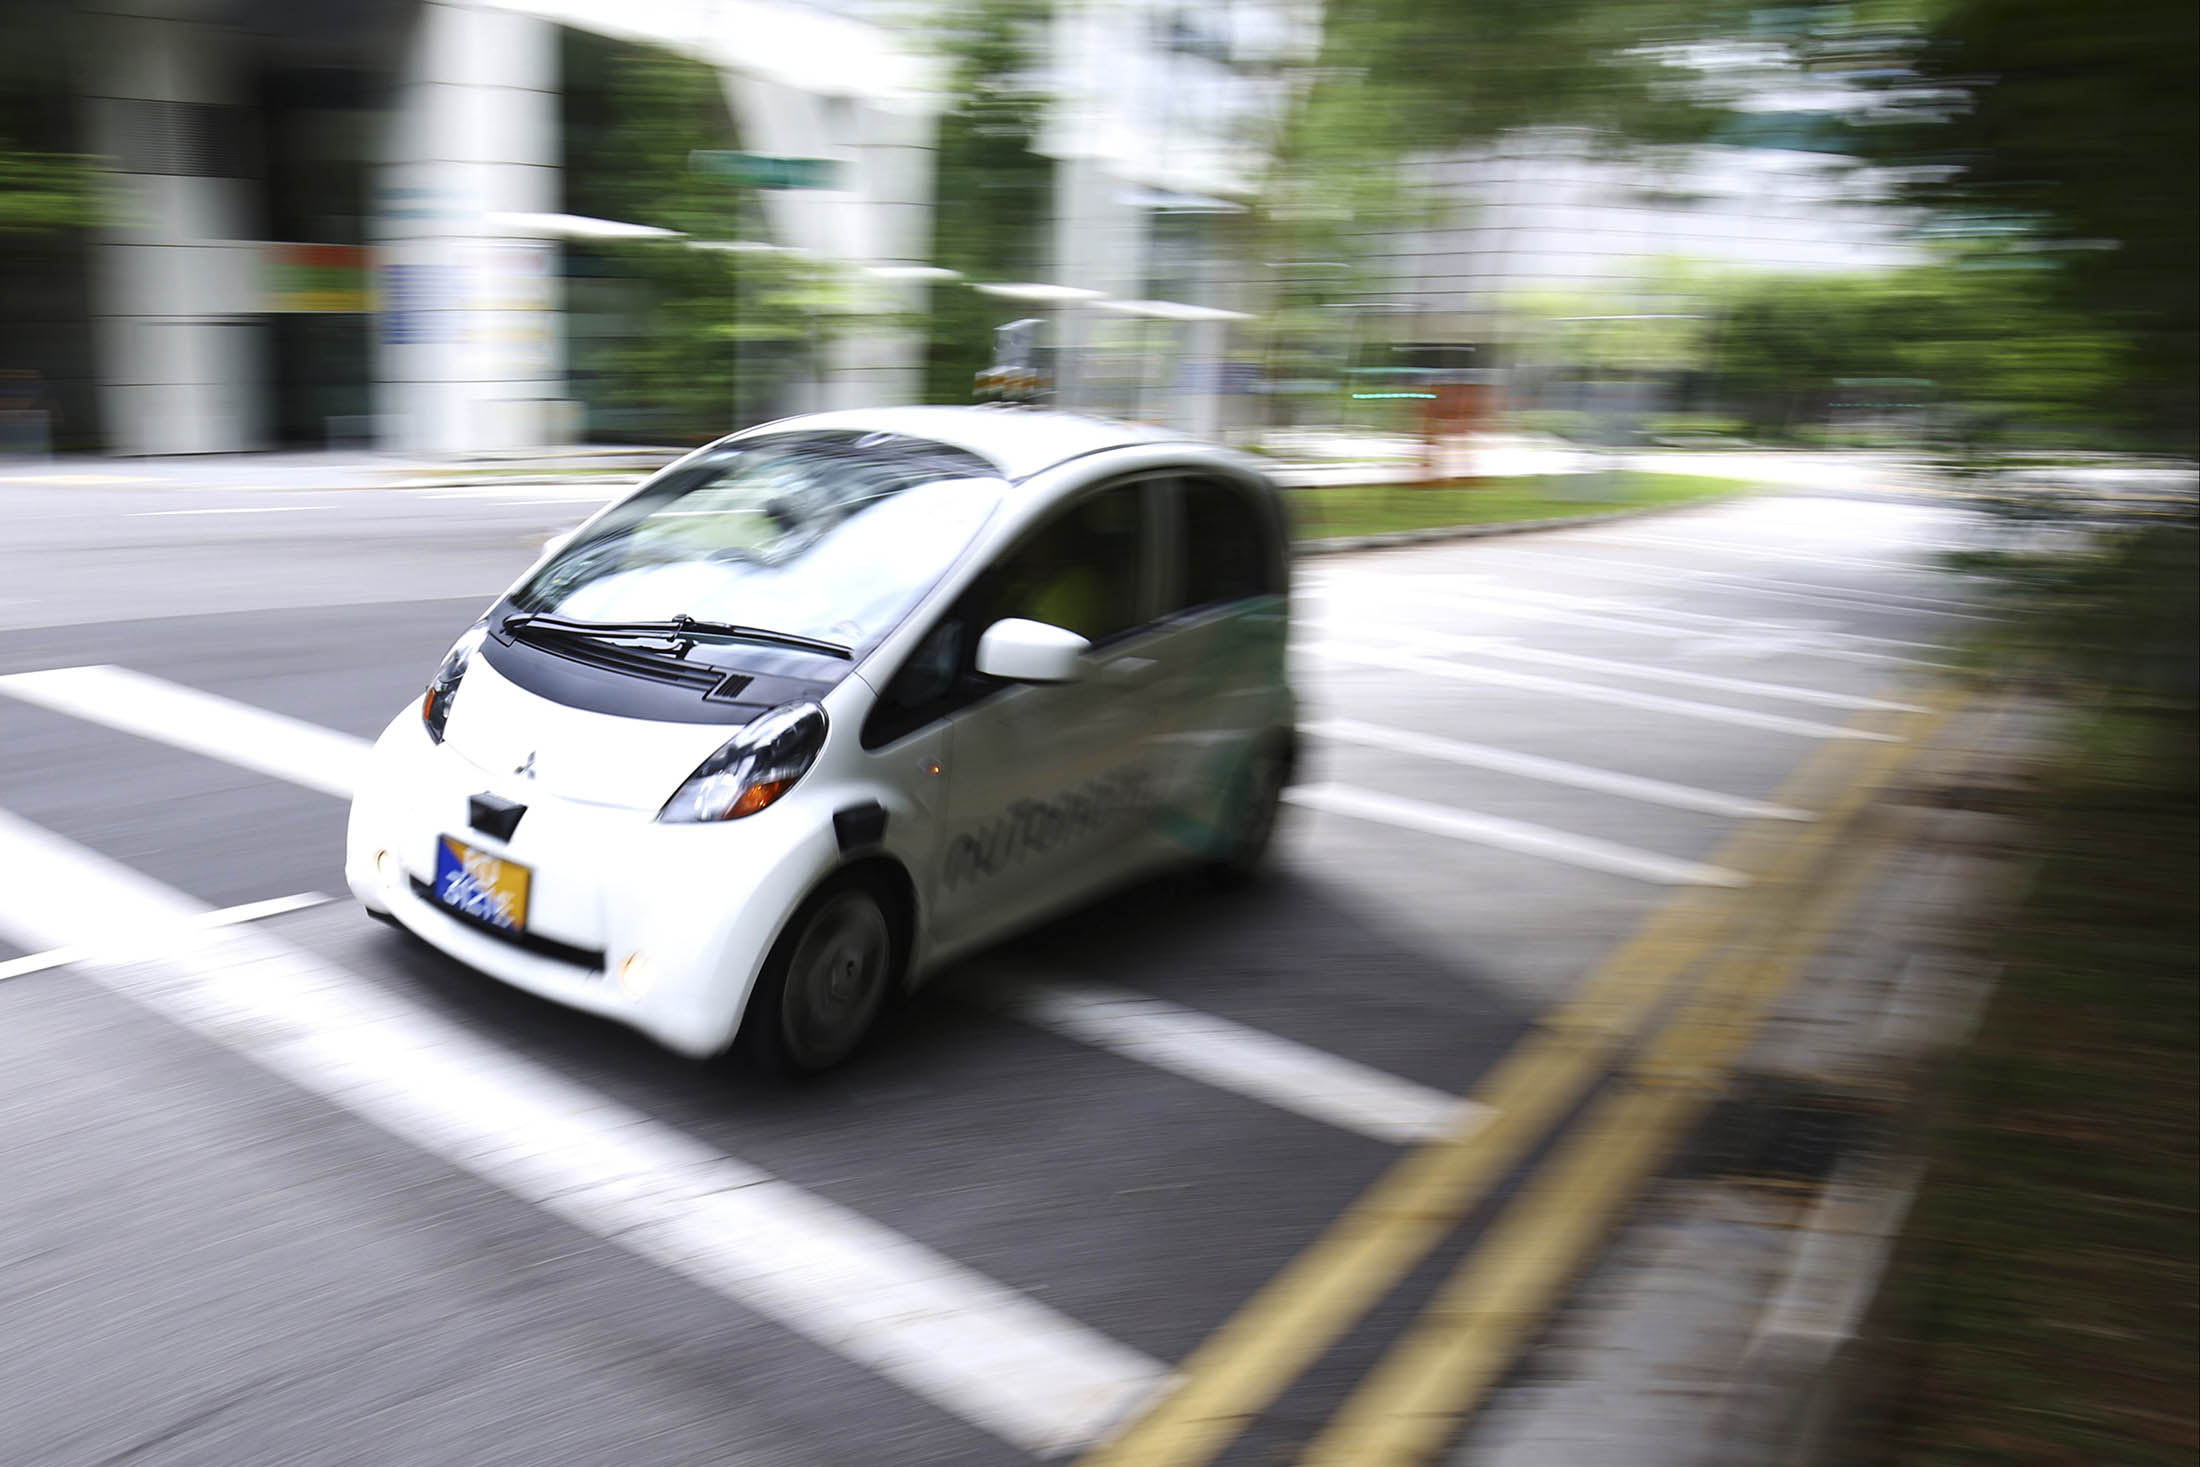 Super-Cheap Driverless Cabs to Kick Mass Transit to the Curb